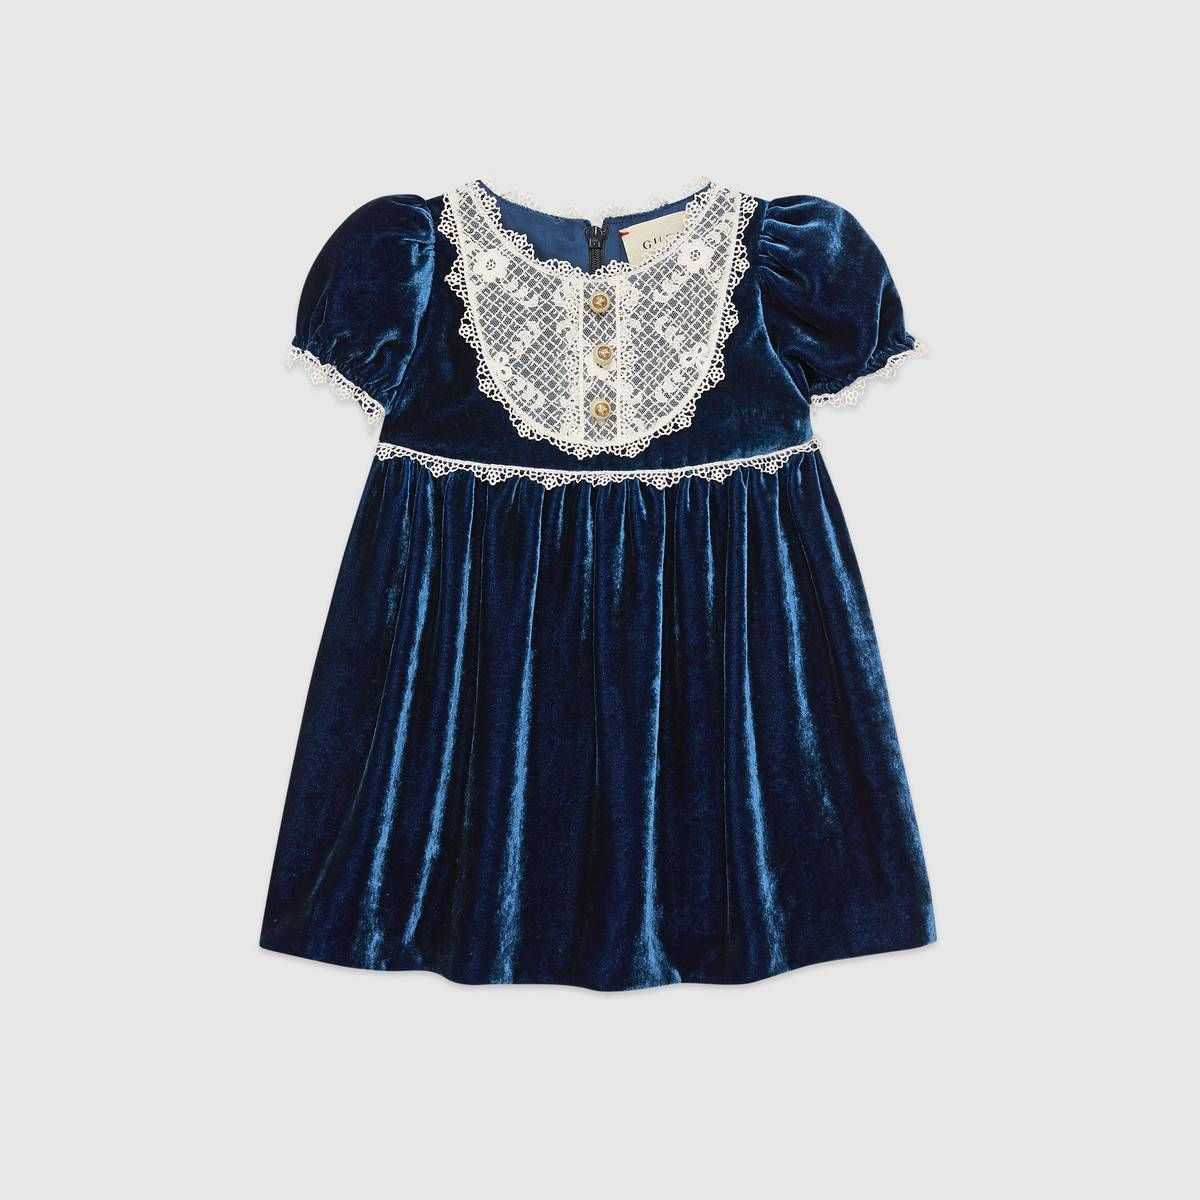 f81616604 Shop the Baby velvet dress by Gucci. A baby dress in fluid blue velvet is